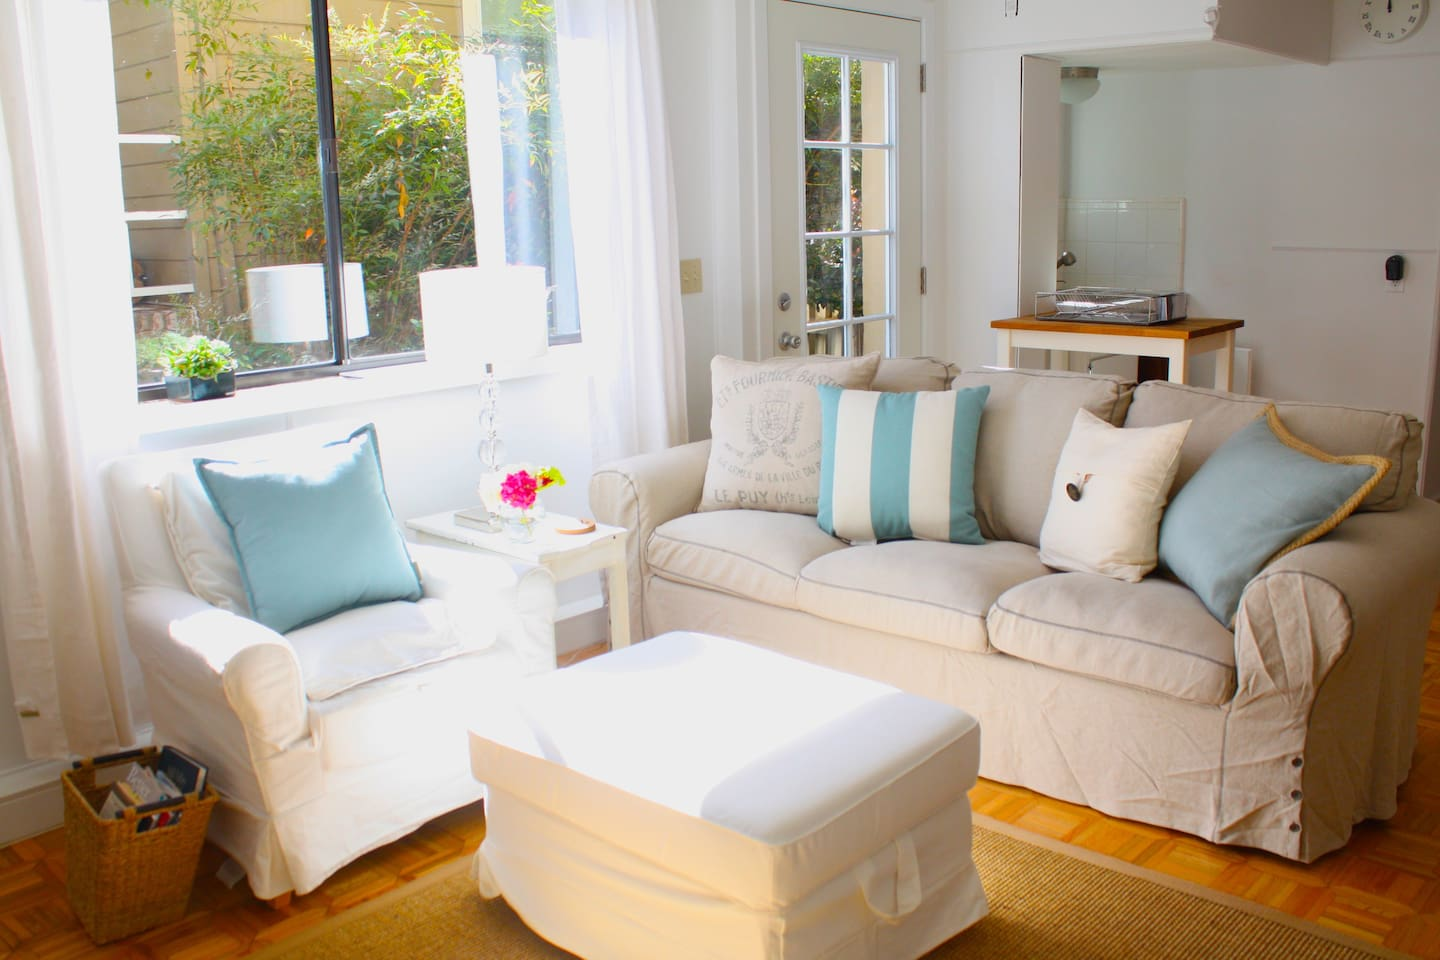 Beautiful & comfortable furniture with natural sunlight.